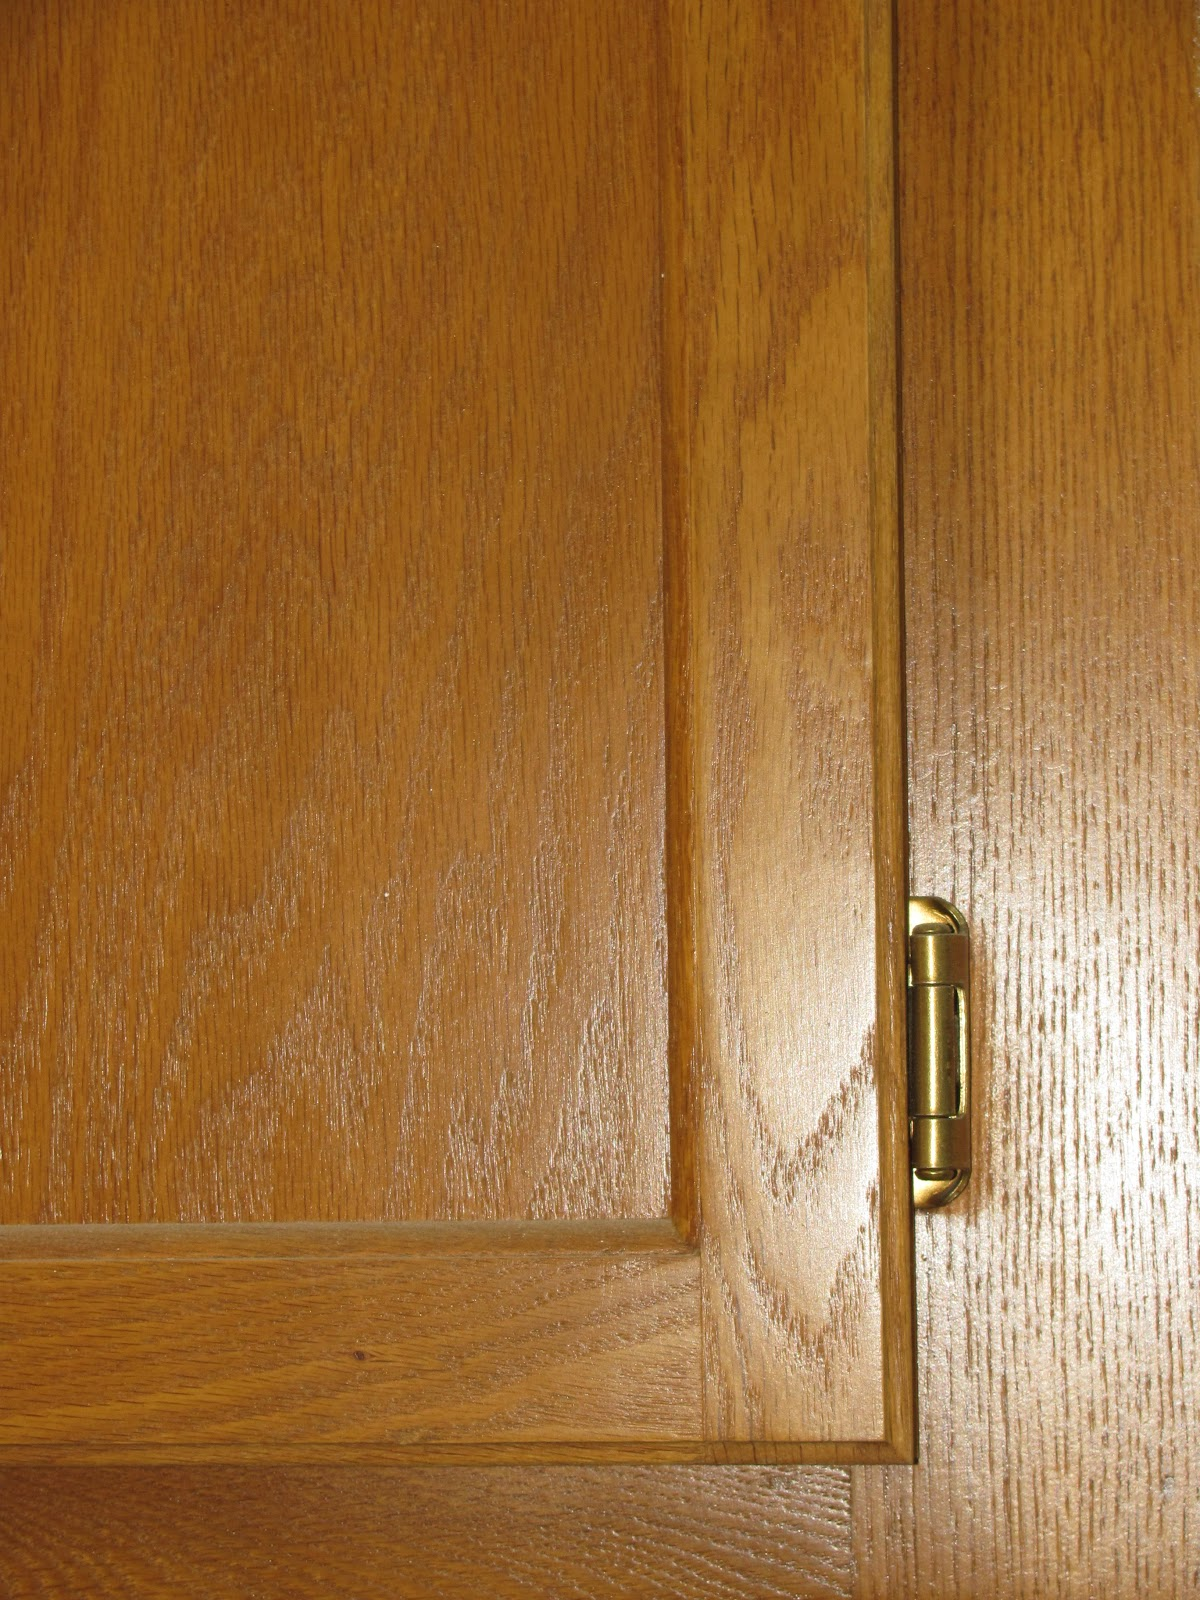 Kitchen Cabinets Hinges Replacement How Much Does It Cost To Change